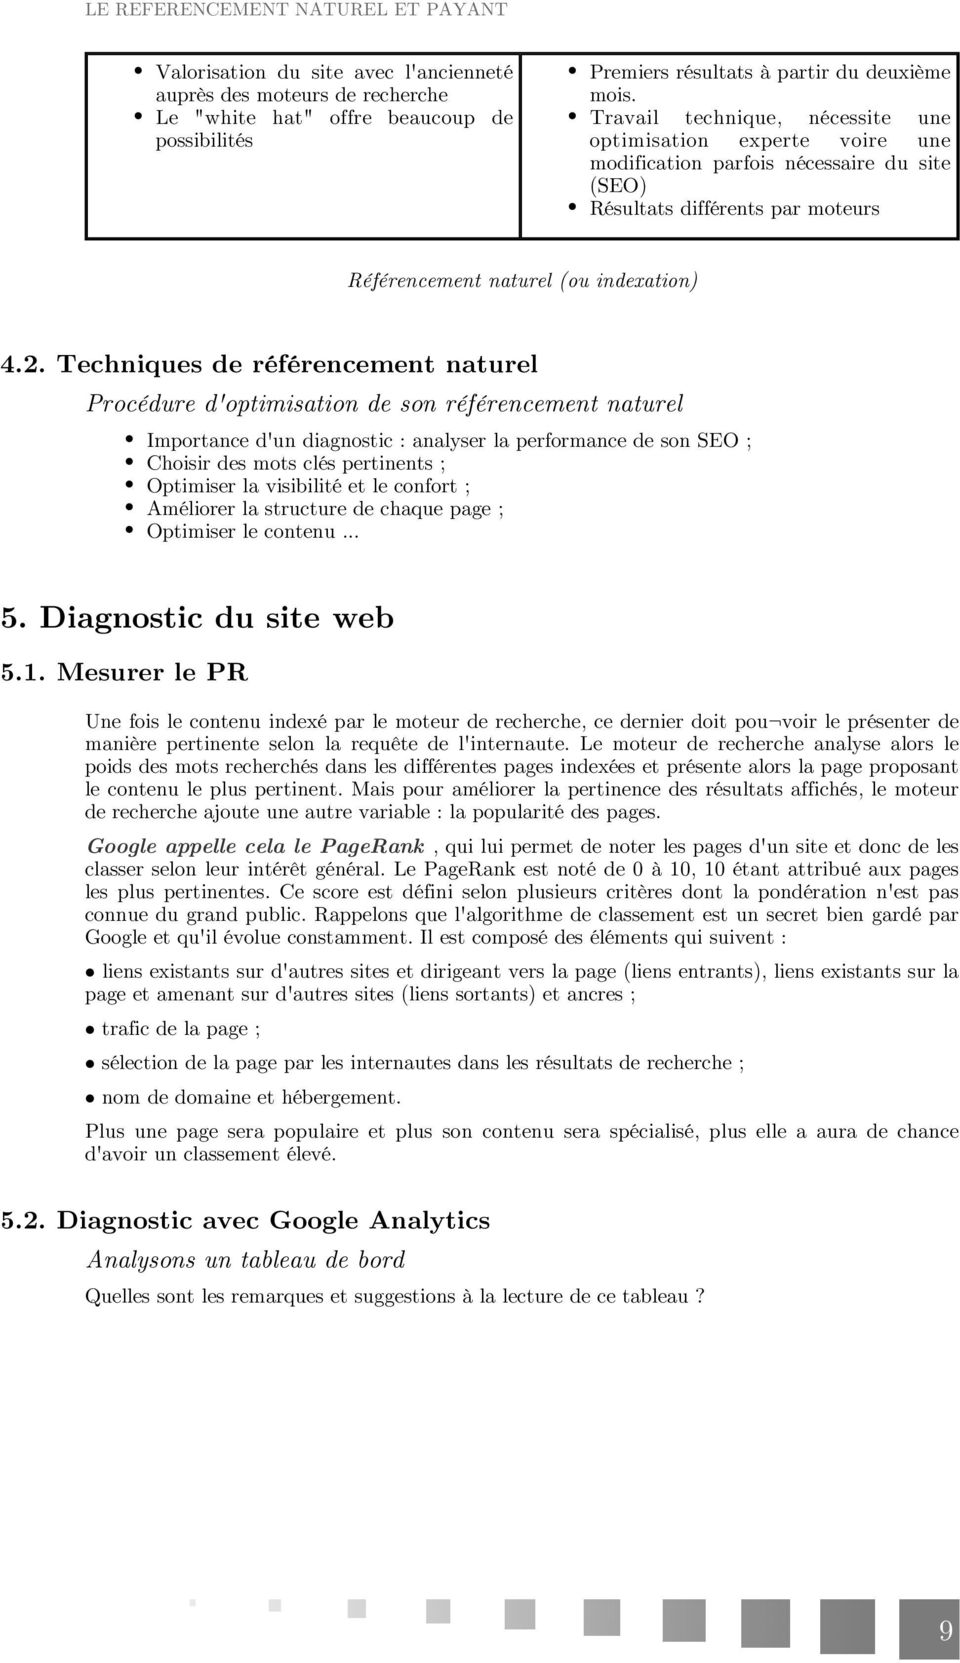 Techniques de référencement naturel Procédure d'optimisation de son référencement naturel Importance d'un diagnostic : analyser la performance de son SEO ; Choisir des mots clés pertinents ;